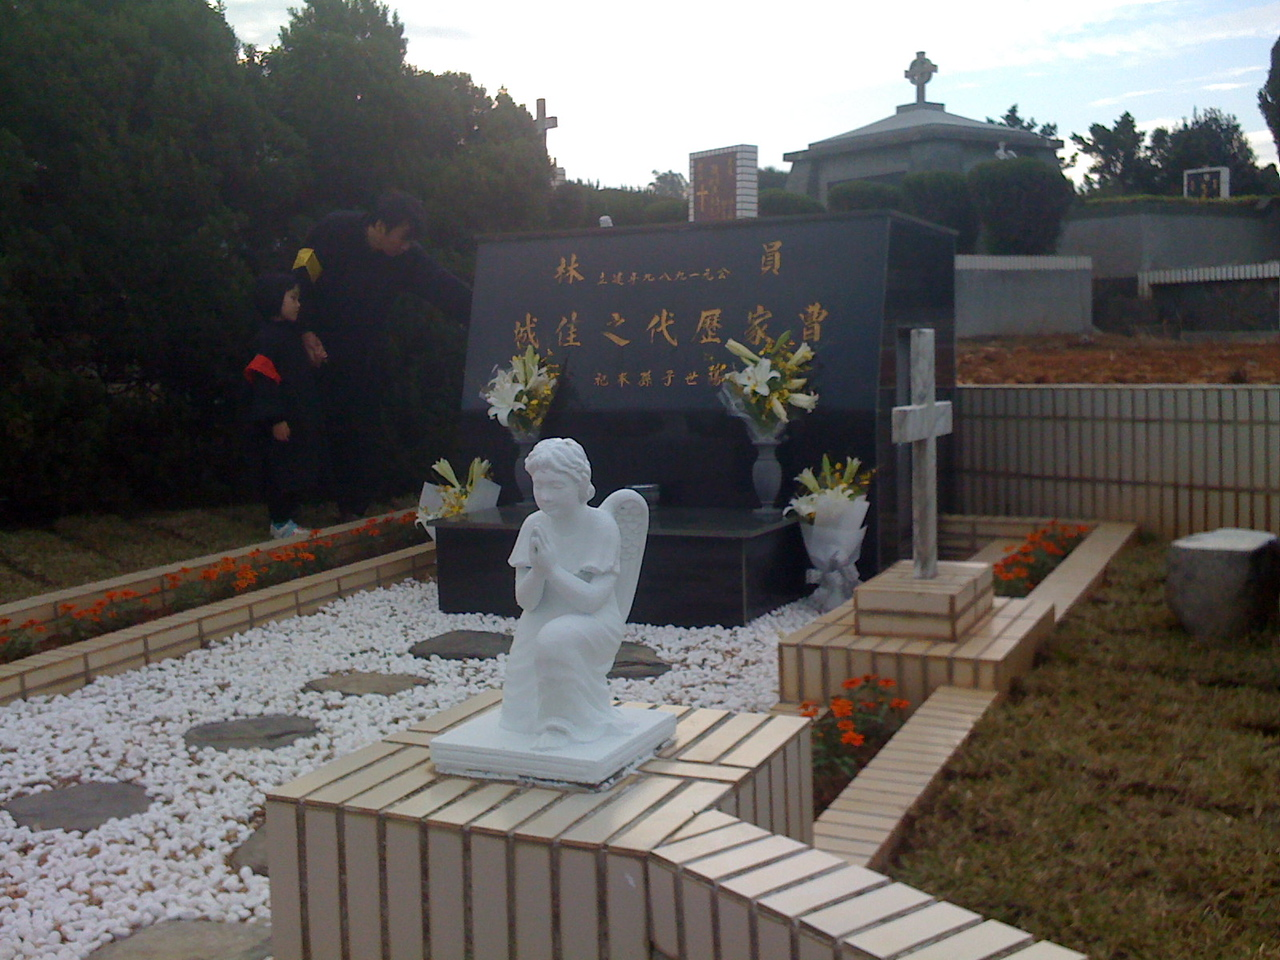 2008 11 26 Wed - Guo2 Bing1 shows daughter writing on side of grandfather, grandmother, & Eldest Uncle's gravesite of ashes urns